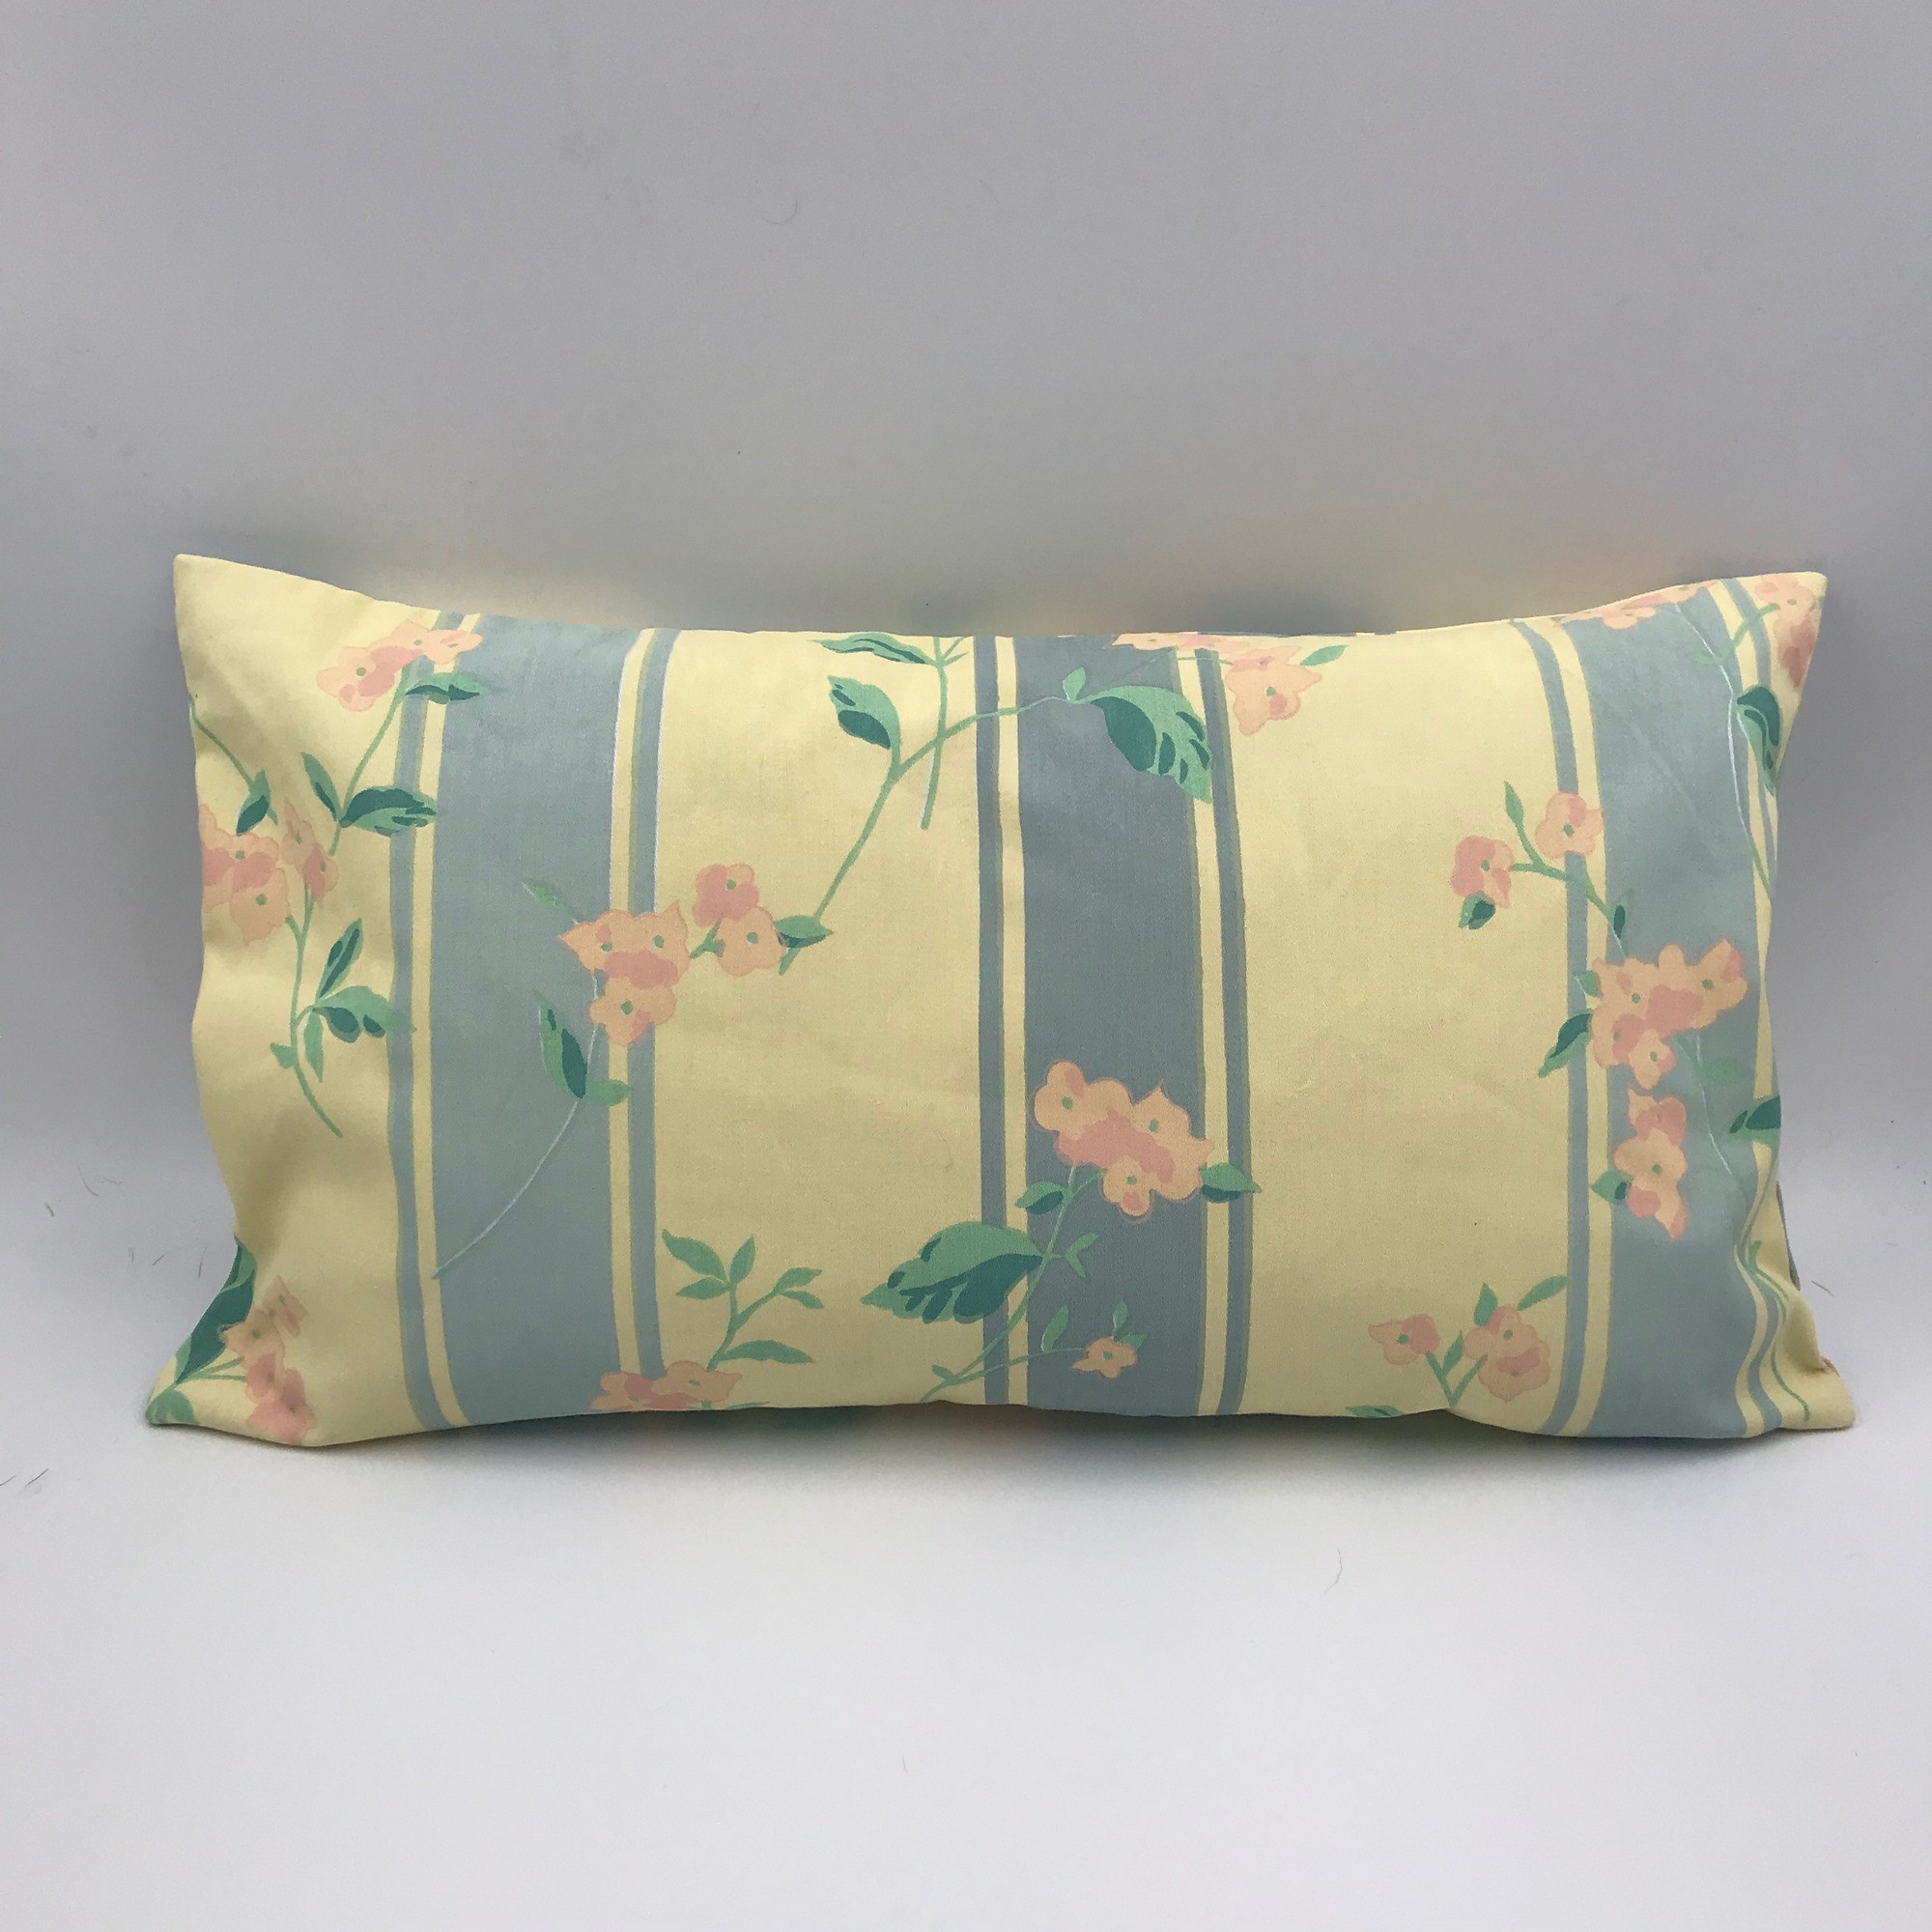 Buy Handmade pillow vintage retro style, Сotton rectangula pillow style 60s, Сraftsman's pillow, Hand made decorative pillow